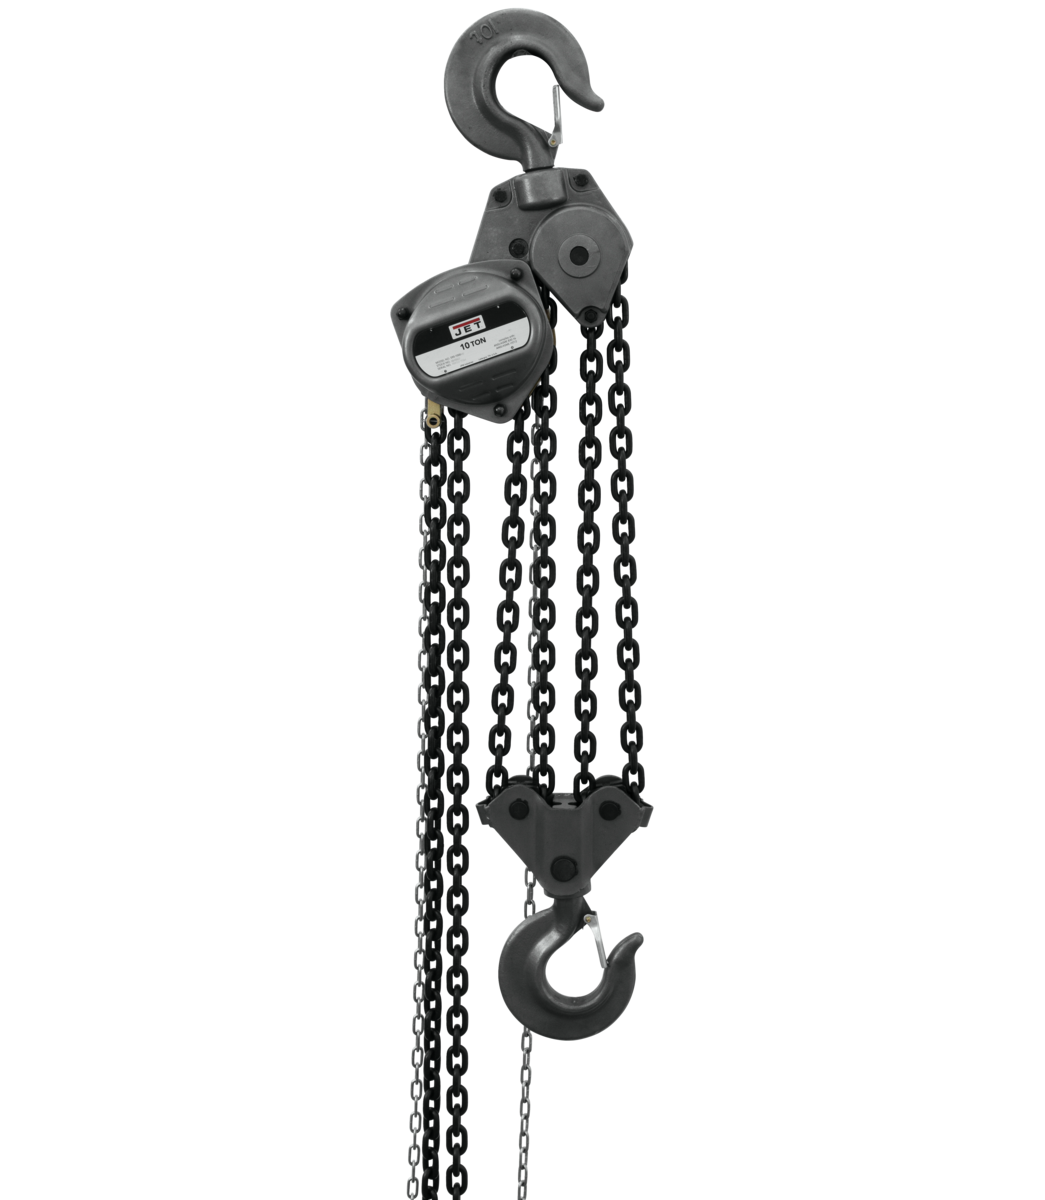 S90-1000-30, 10-Ton Hand Chain Hoist With 30' Lift